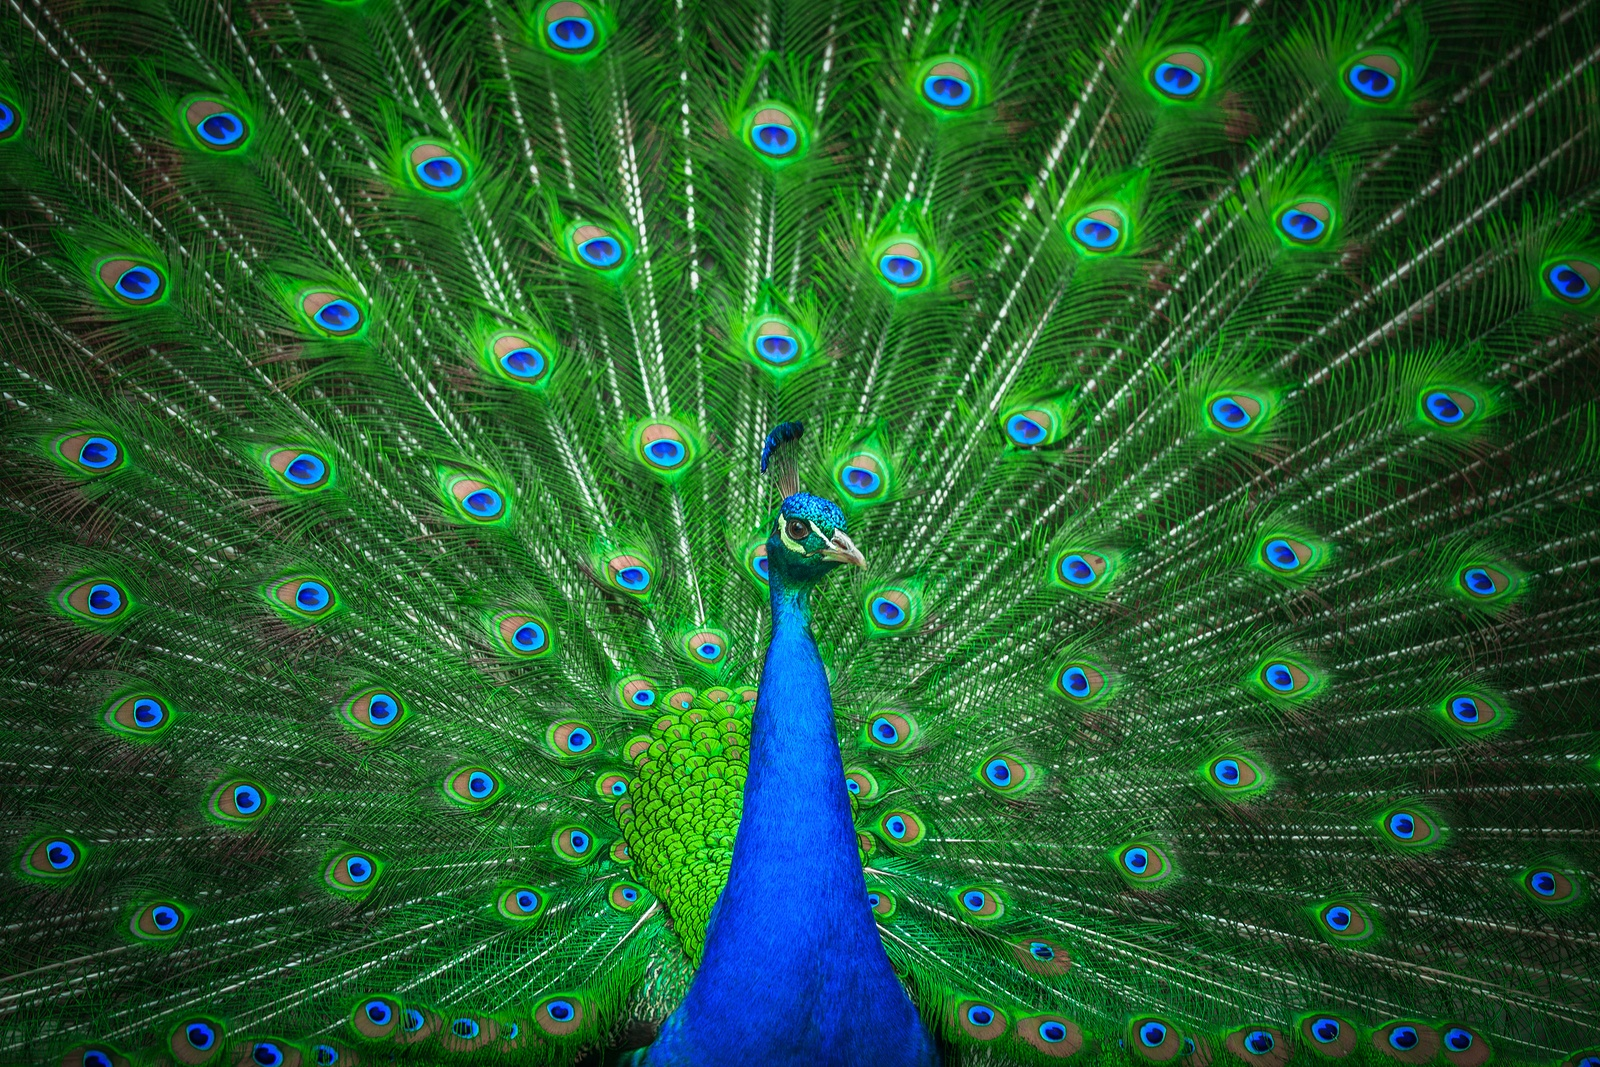 bigstock-Portrait-of-beautiful-peacock-98347724.jpg